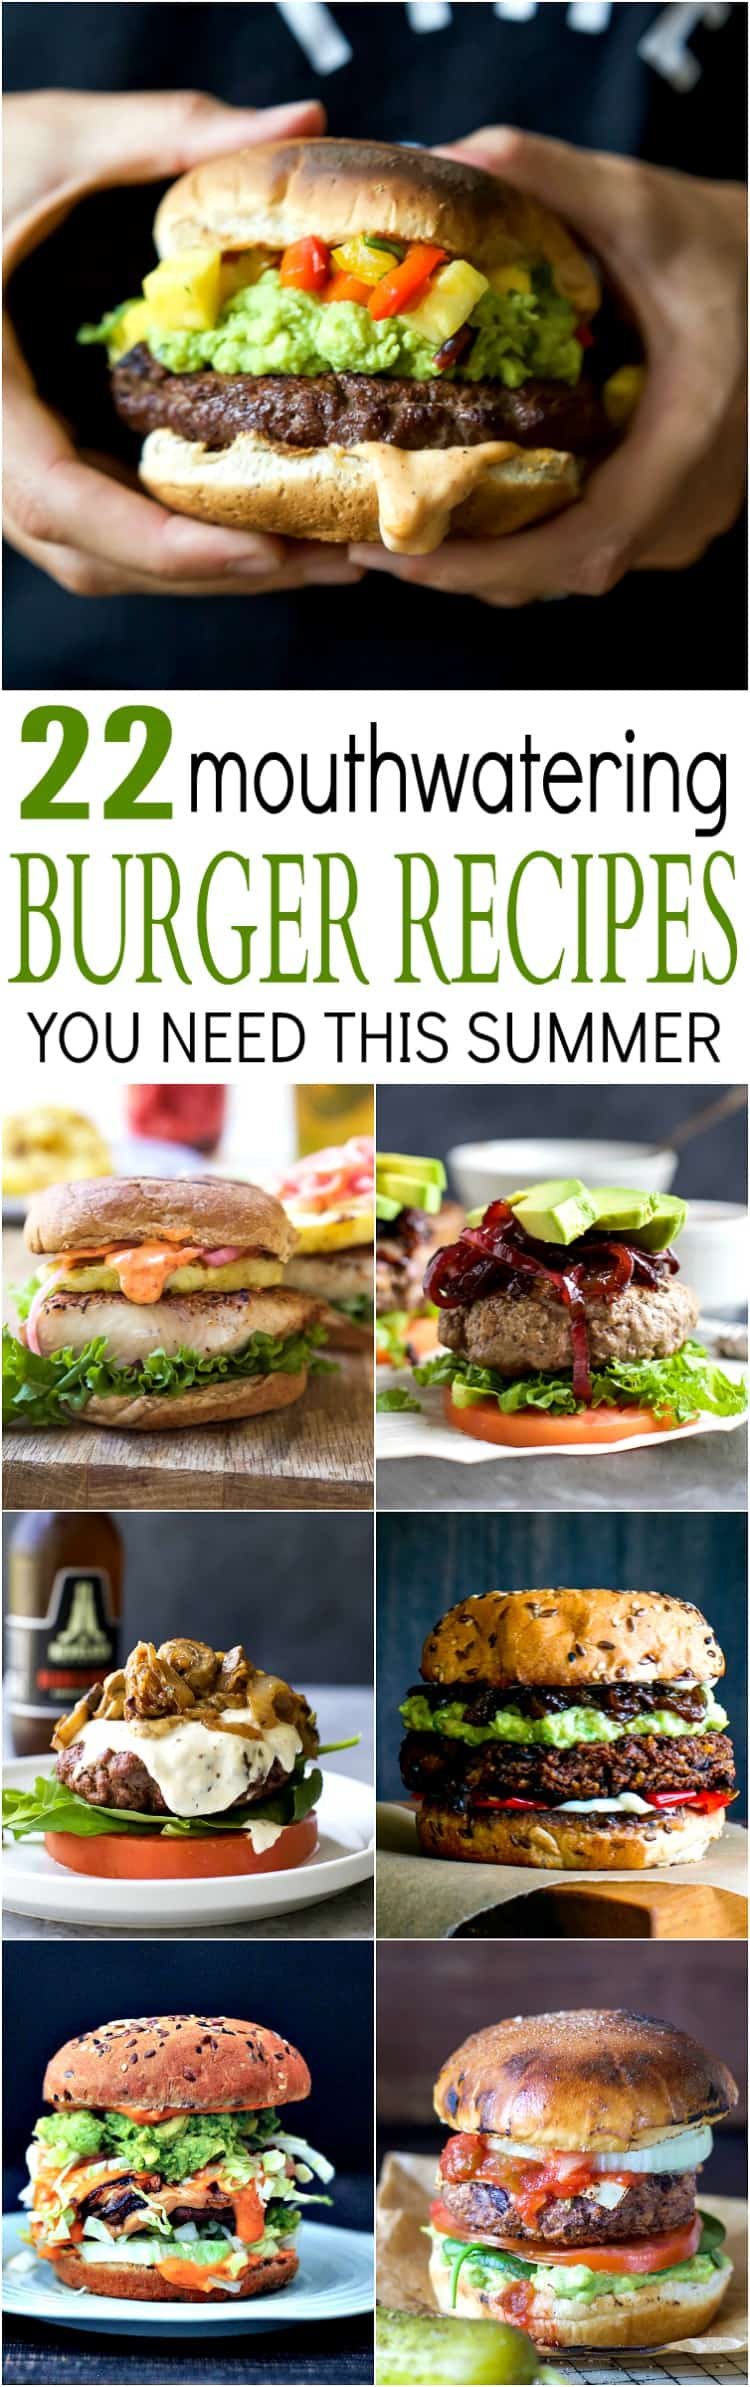 22 Mouthwatering Burger Recipes You Need This Summer Easy Healthy Recipes